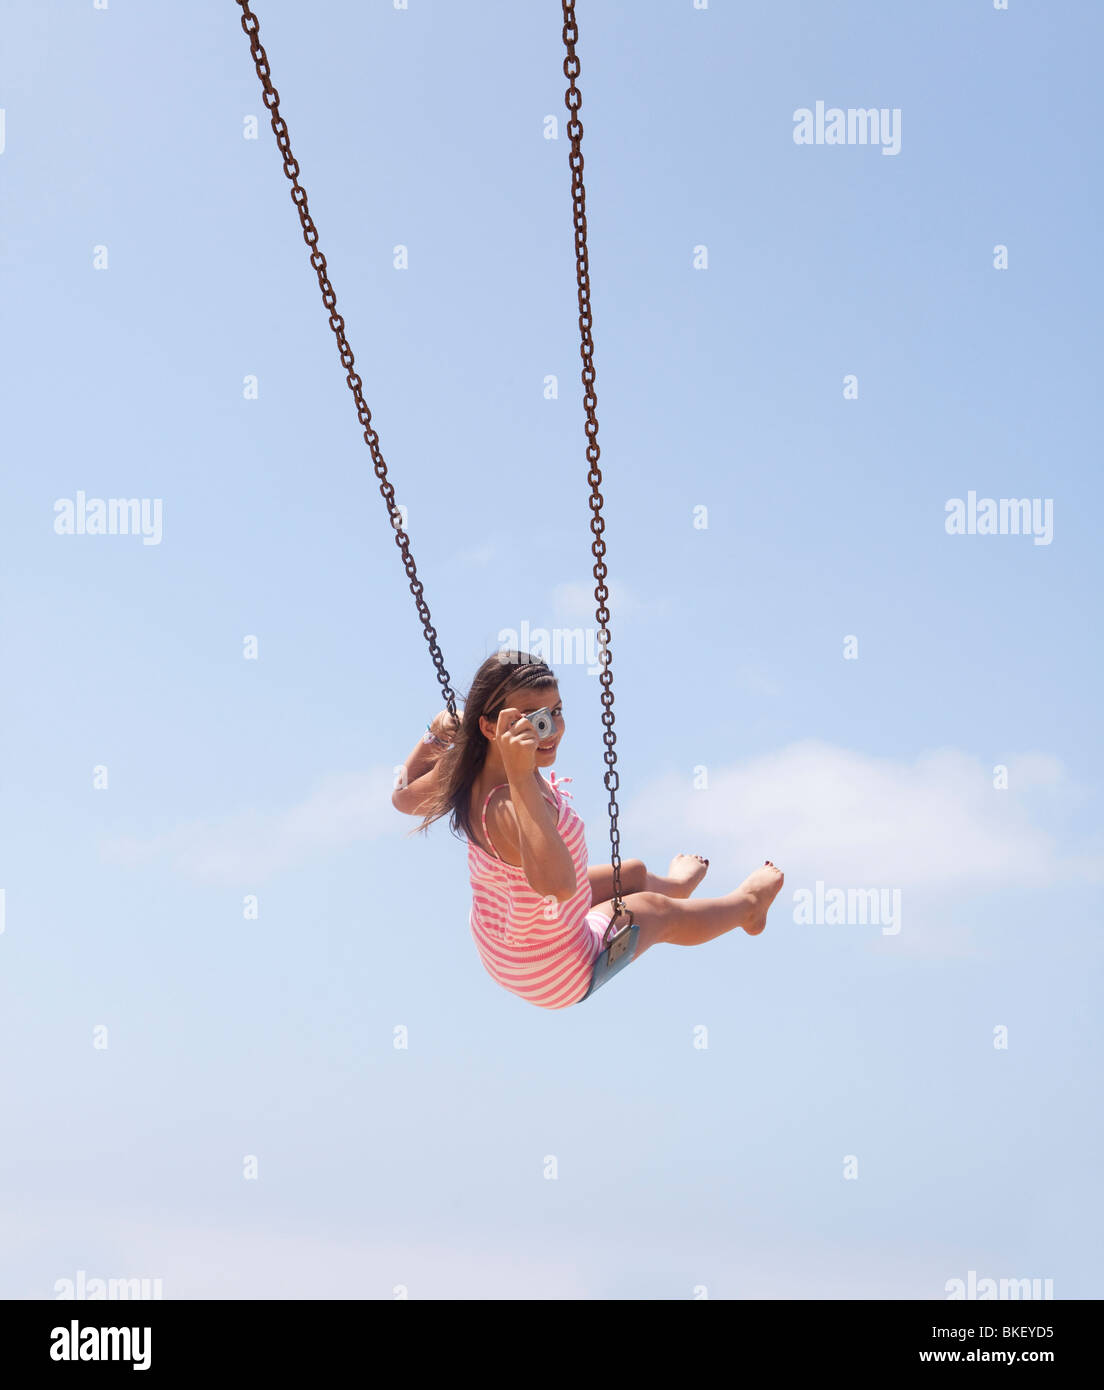 Girl taking picture from swing - Stock Image